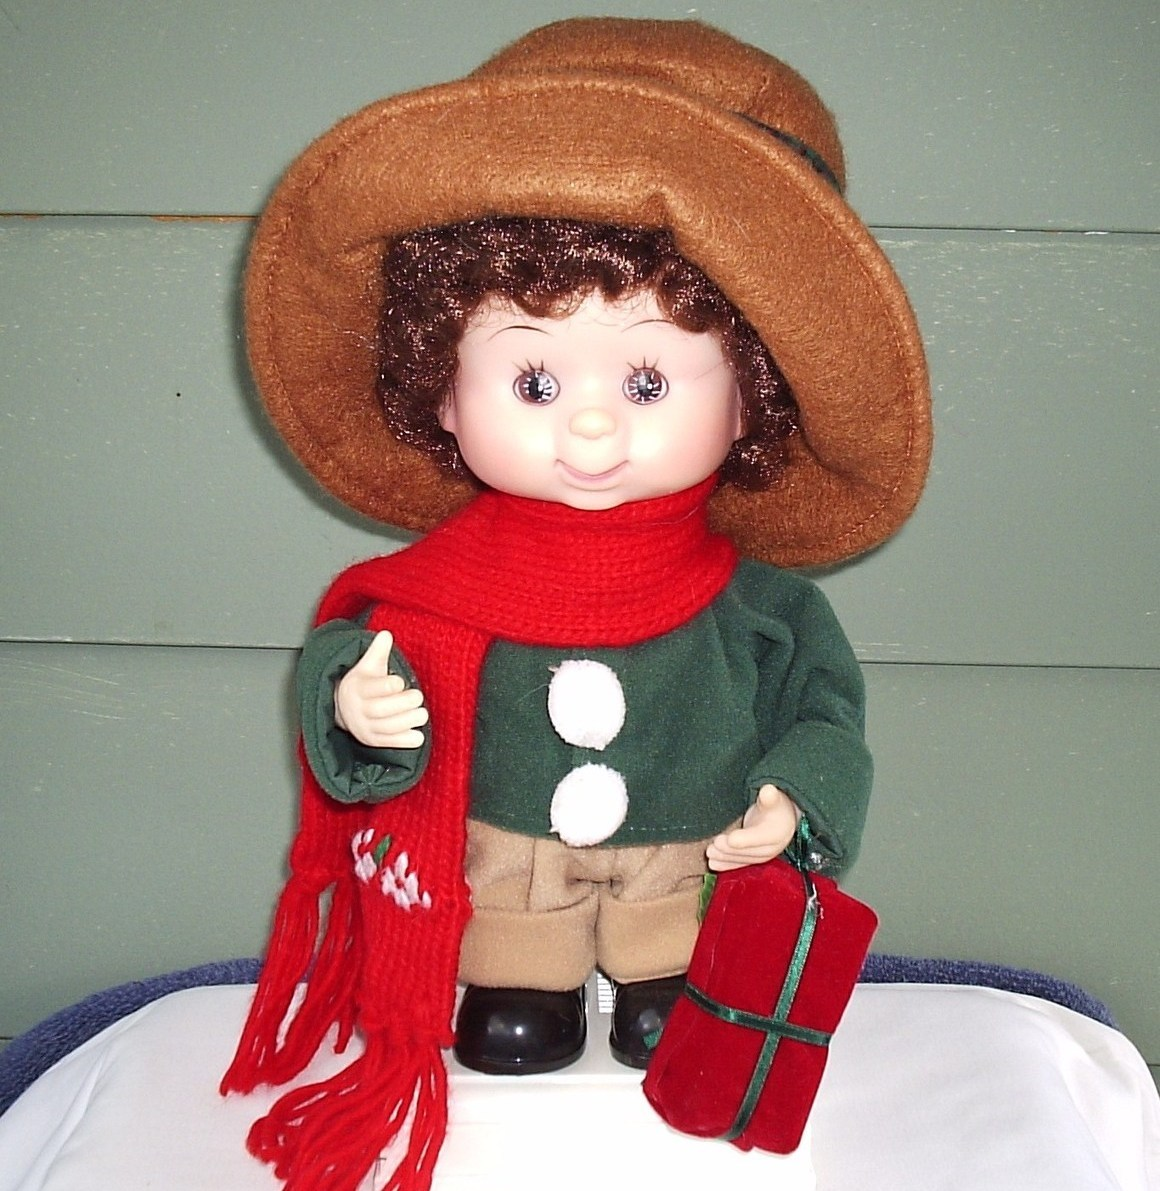 Christmas Animated Girl Doll Display Collector Item